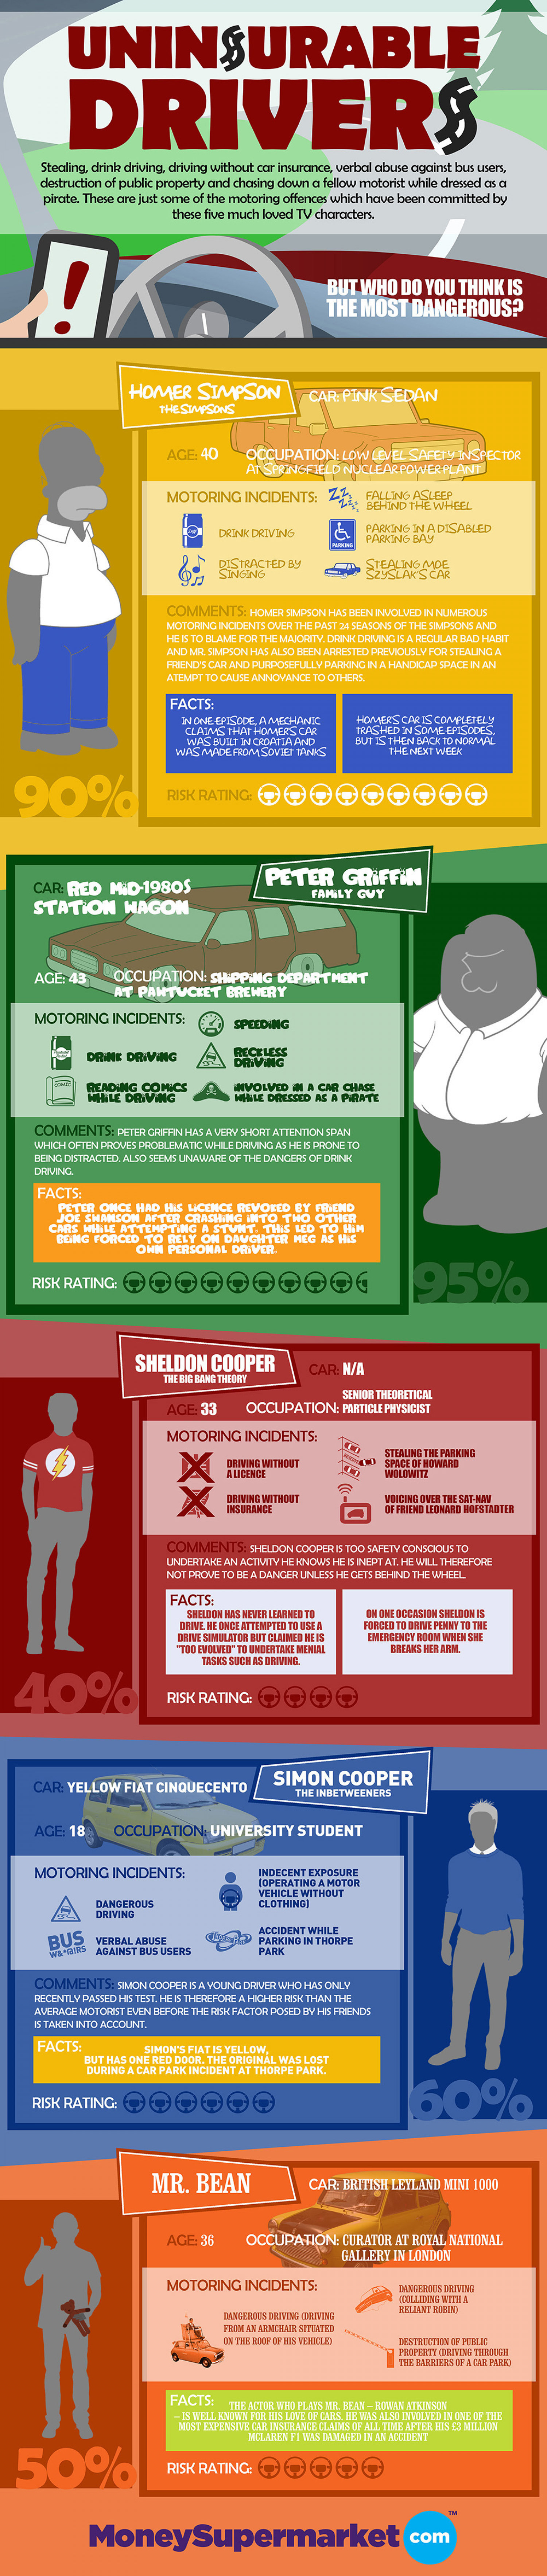 Uninsurable Drivers Infographic